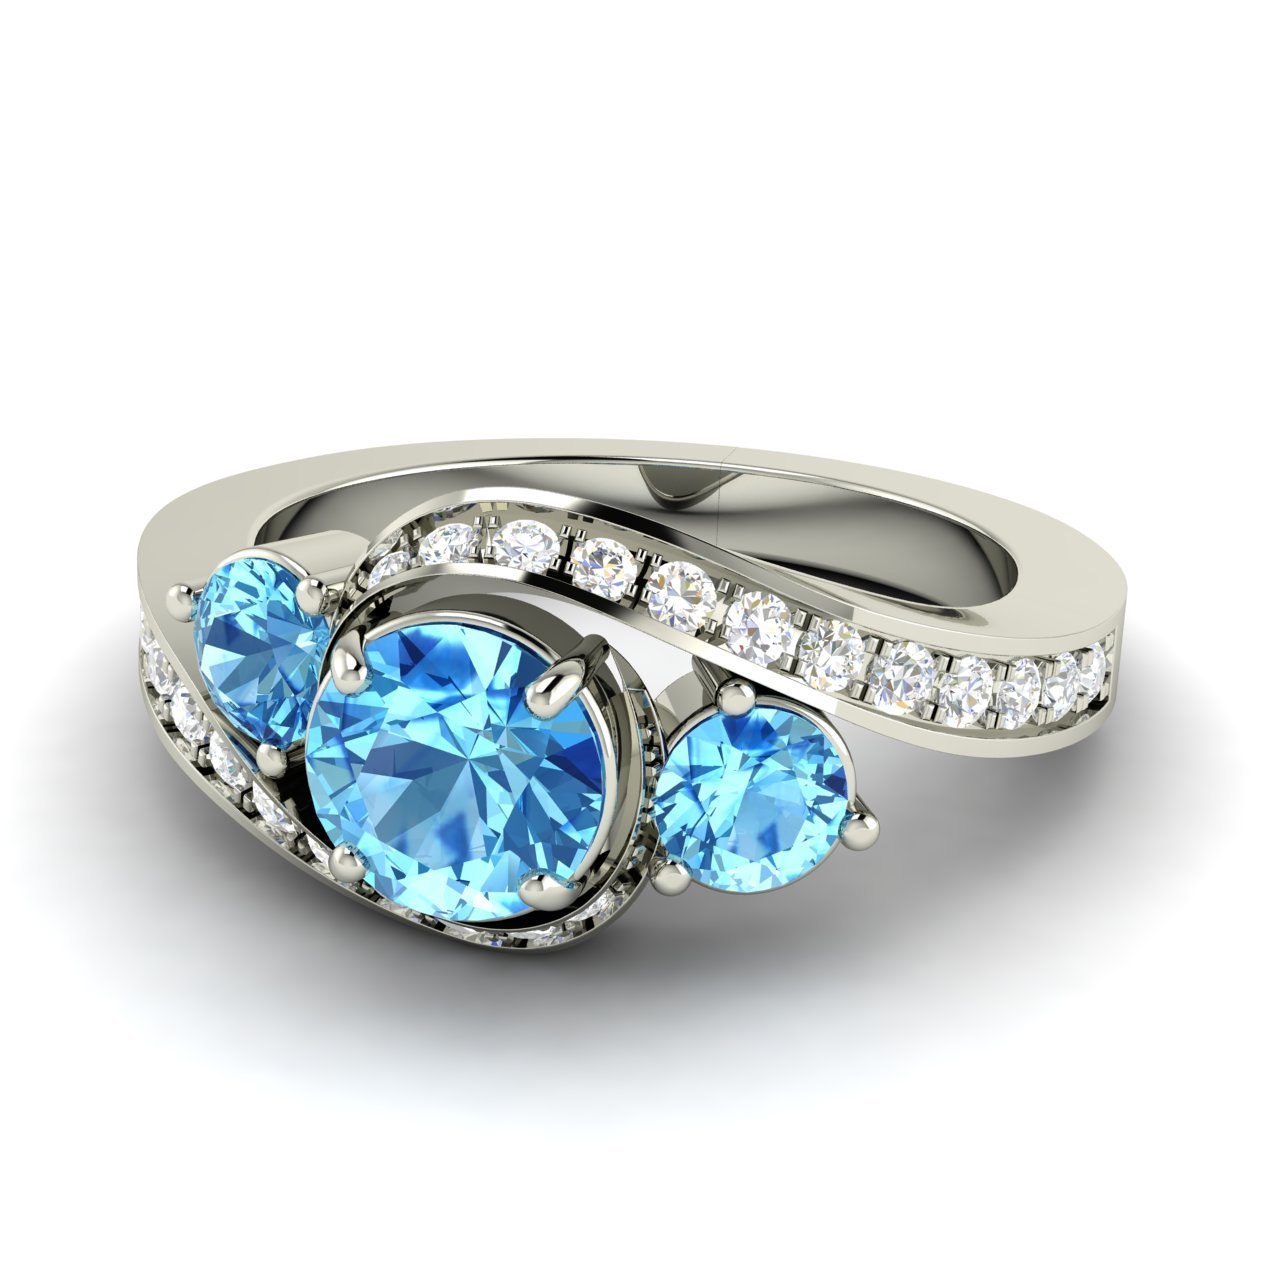 Blue Topaz Stone : Natural blue topaz side stone engagement ring with